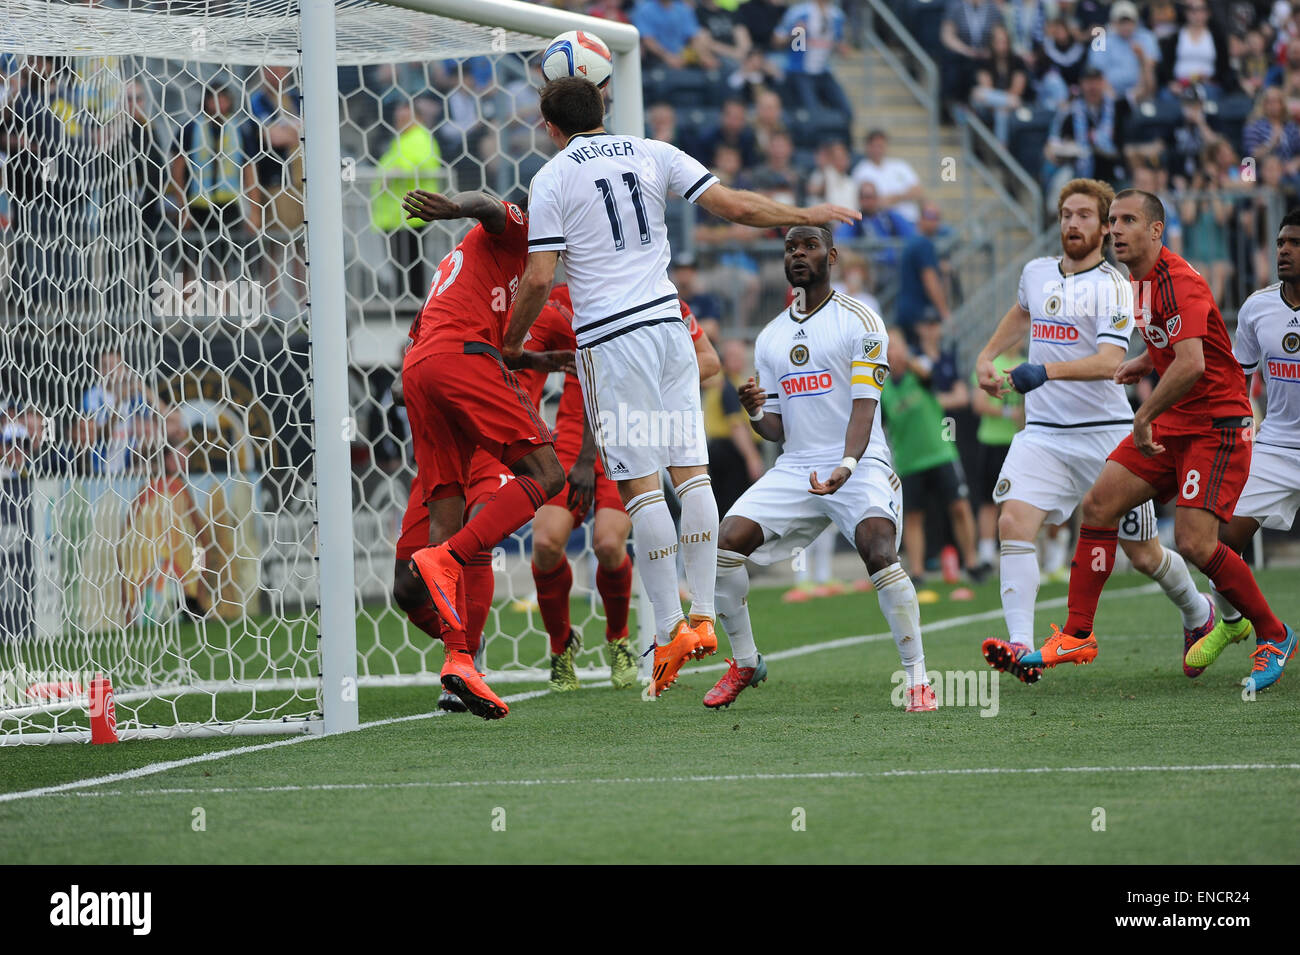 Chester, Pennsylvania, USA. 2nd May, 2015. Philadelphia Union's ANDREW WENGER (11), tries a header on goal during Stock Photo